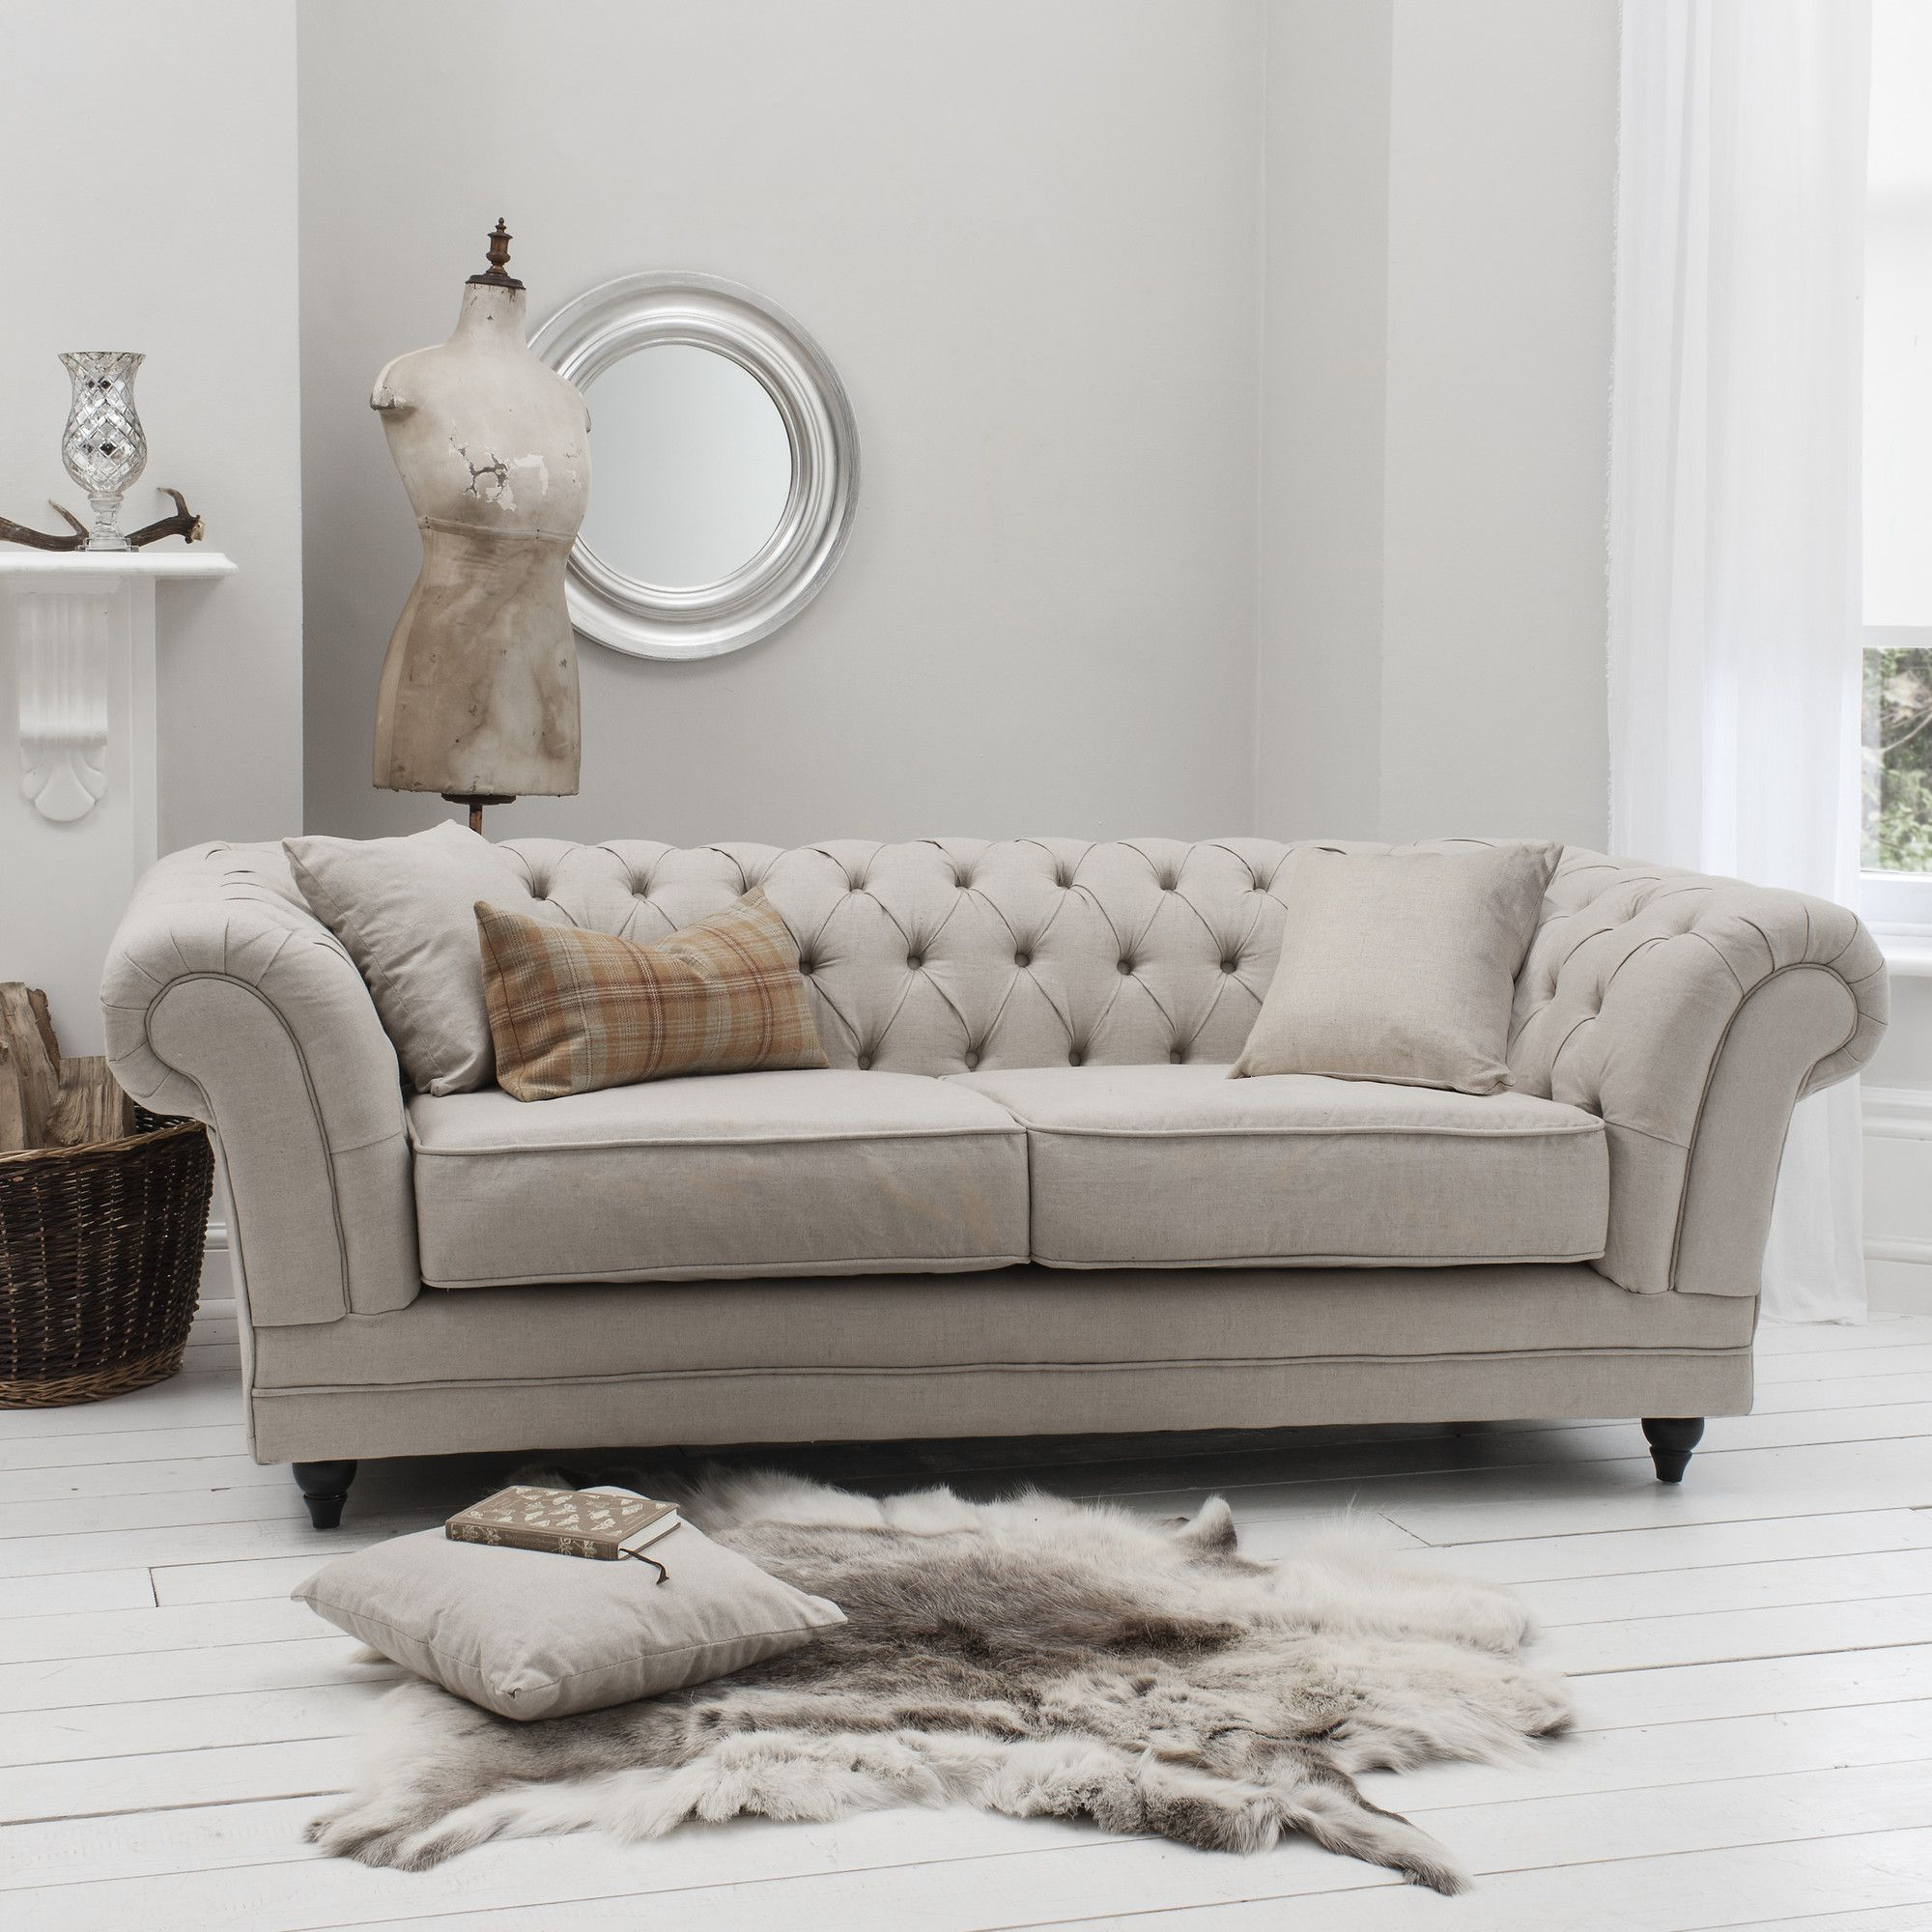 Chaise In Living Room Modern French Country Decor Francesca 3 Seater Sofa Wayfair Uk To Home Pinterest Fabric Chesterfield Loveseat